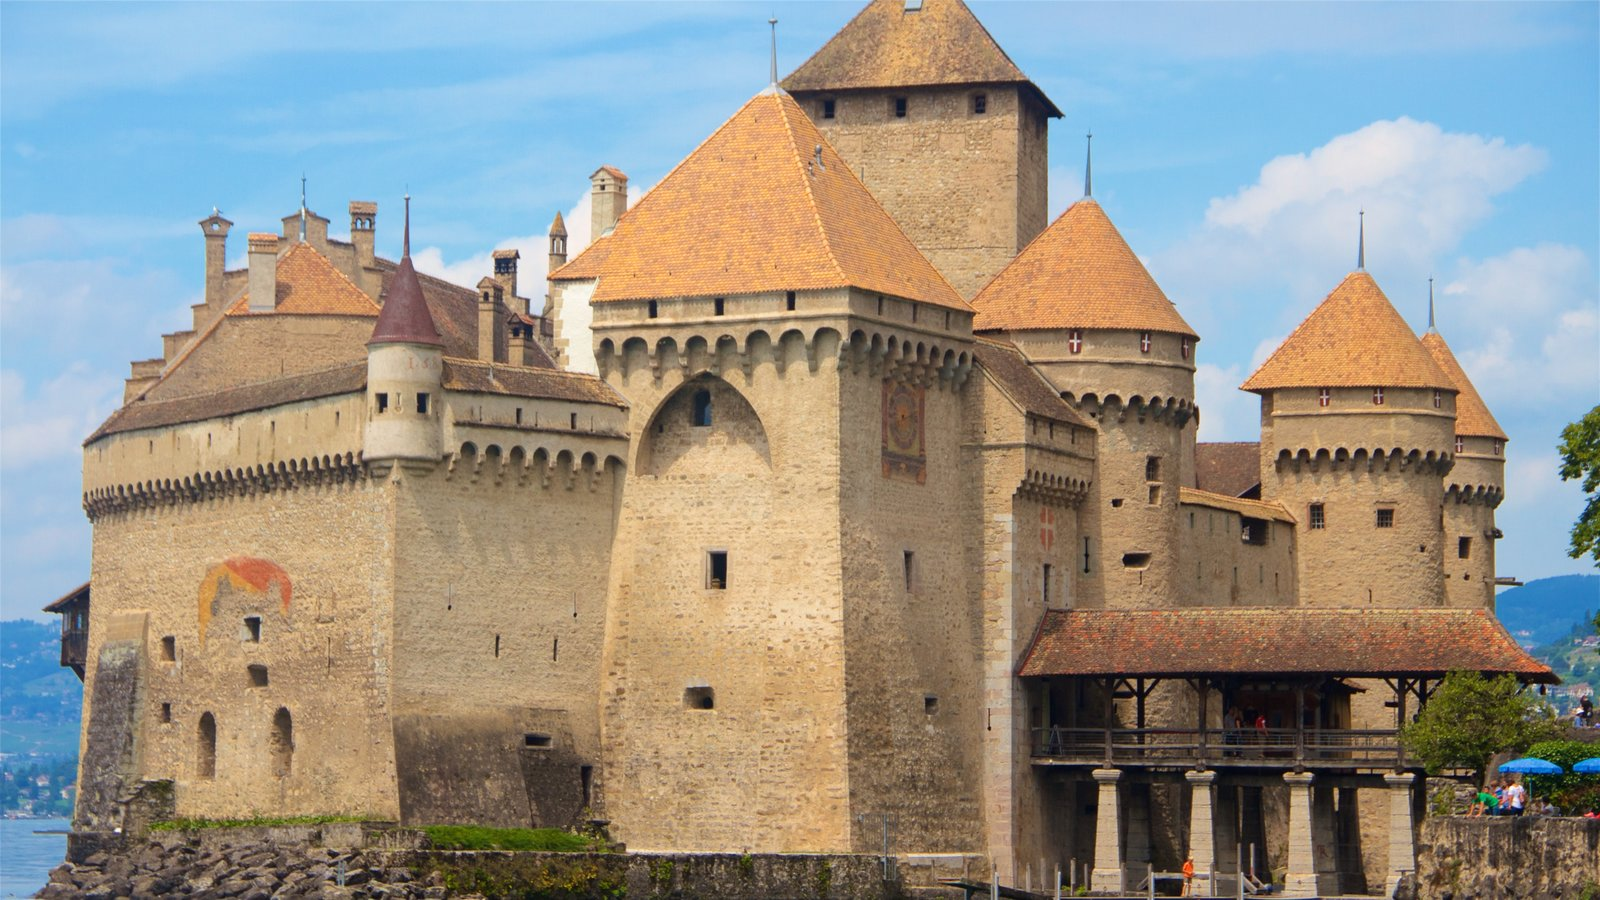 Chateau de Chillon which includes heritage elements, heritage architecture and chateau or palace